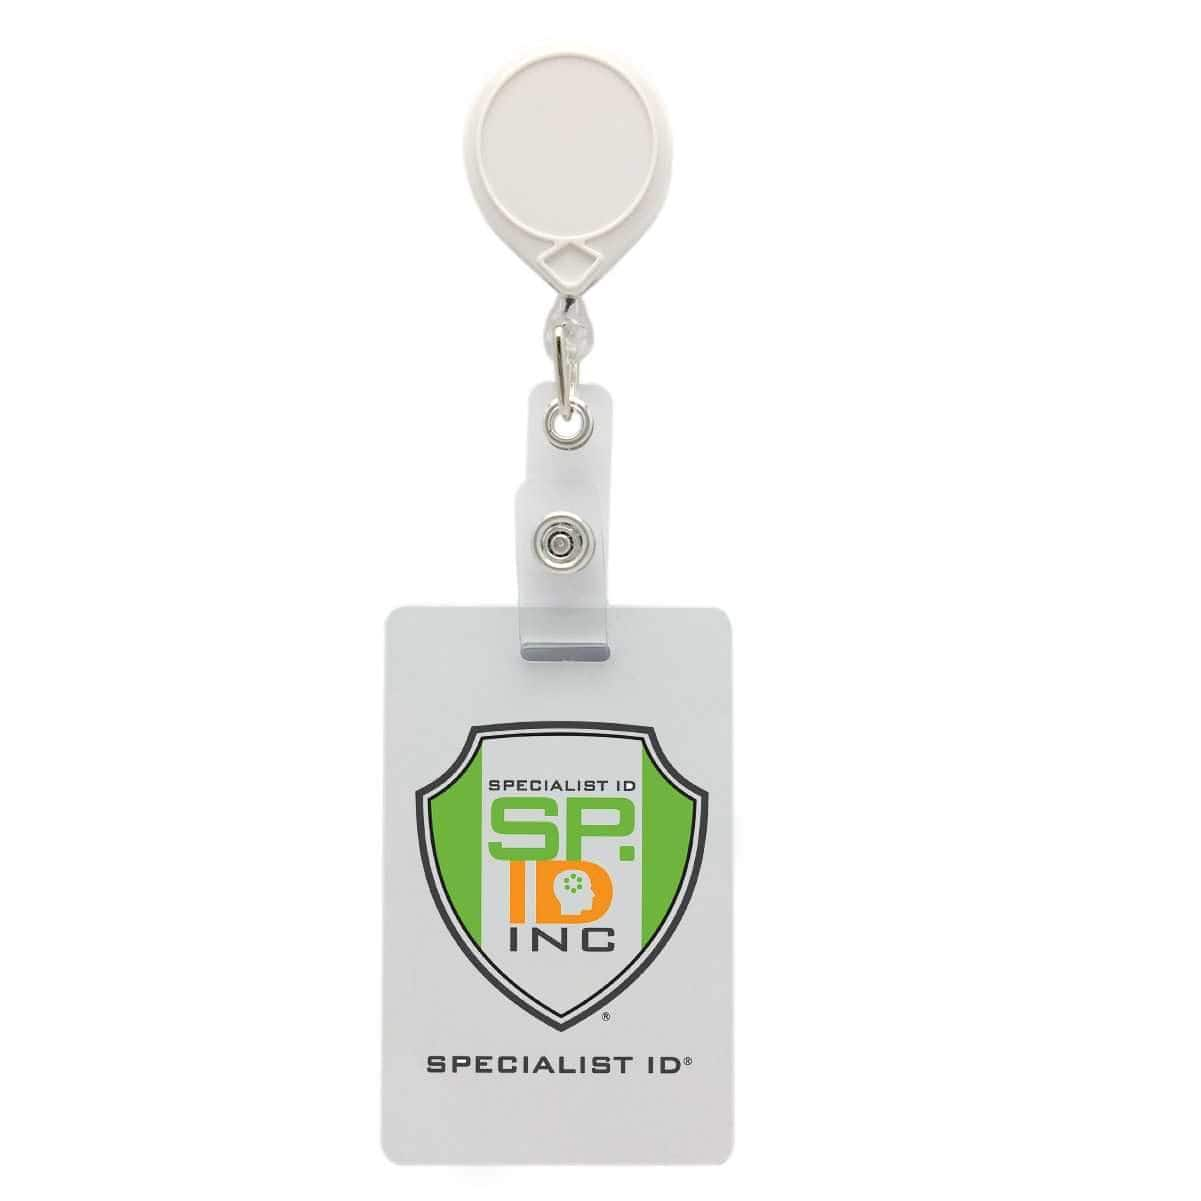 Key-Bak #66 Retractable Reel shown attached to a Specialist ID badge